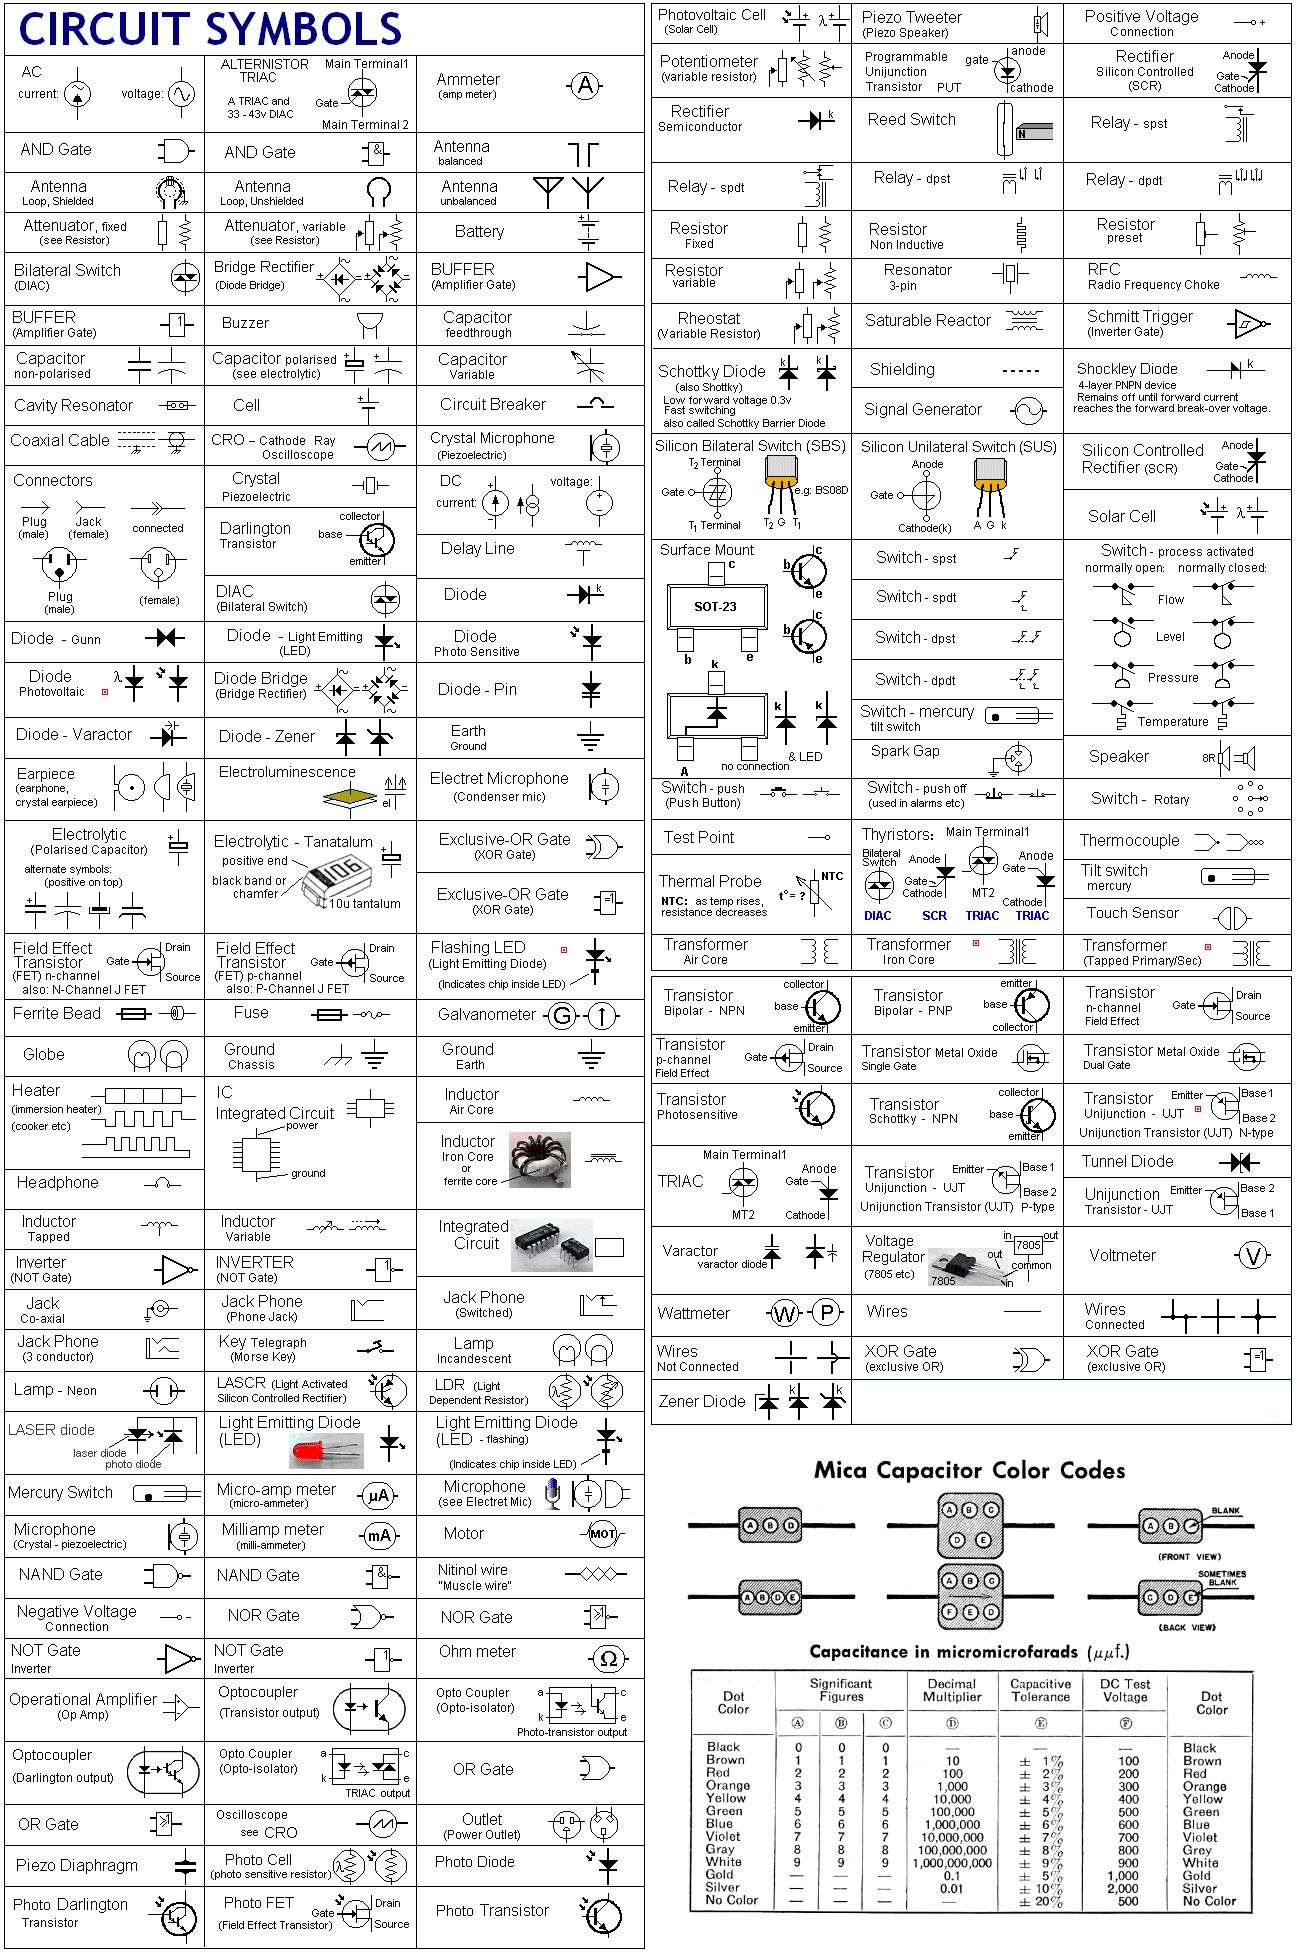 6c64fb84c8e162b28334051891c290f4 schematic symbols chart electric circuit symbols a considerably wiring diagram symbols at aneh.co